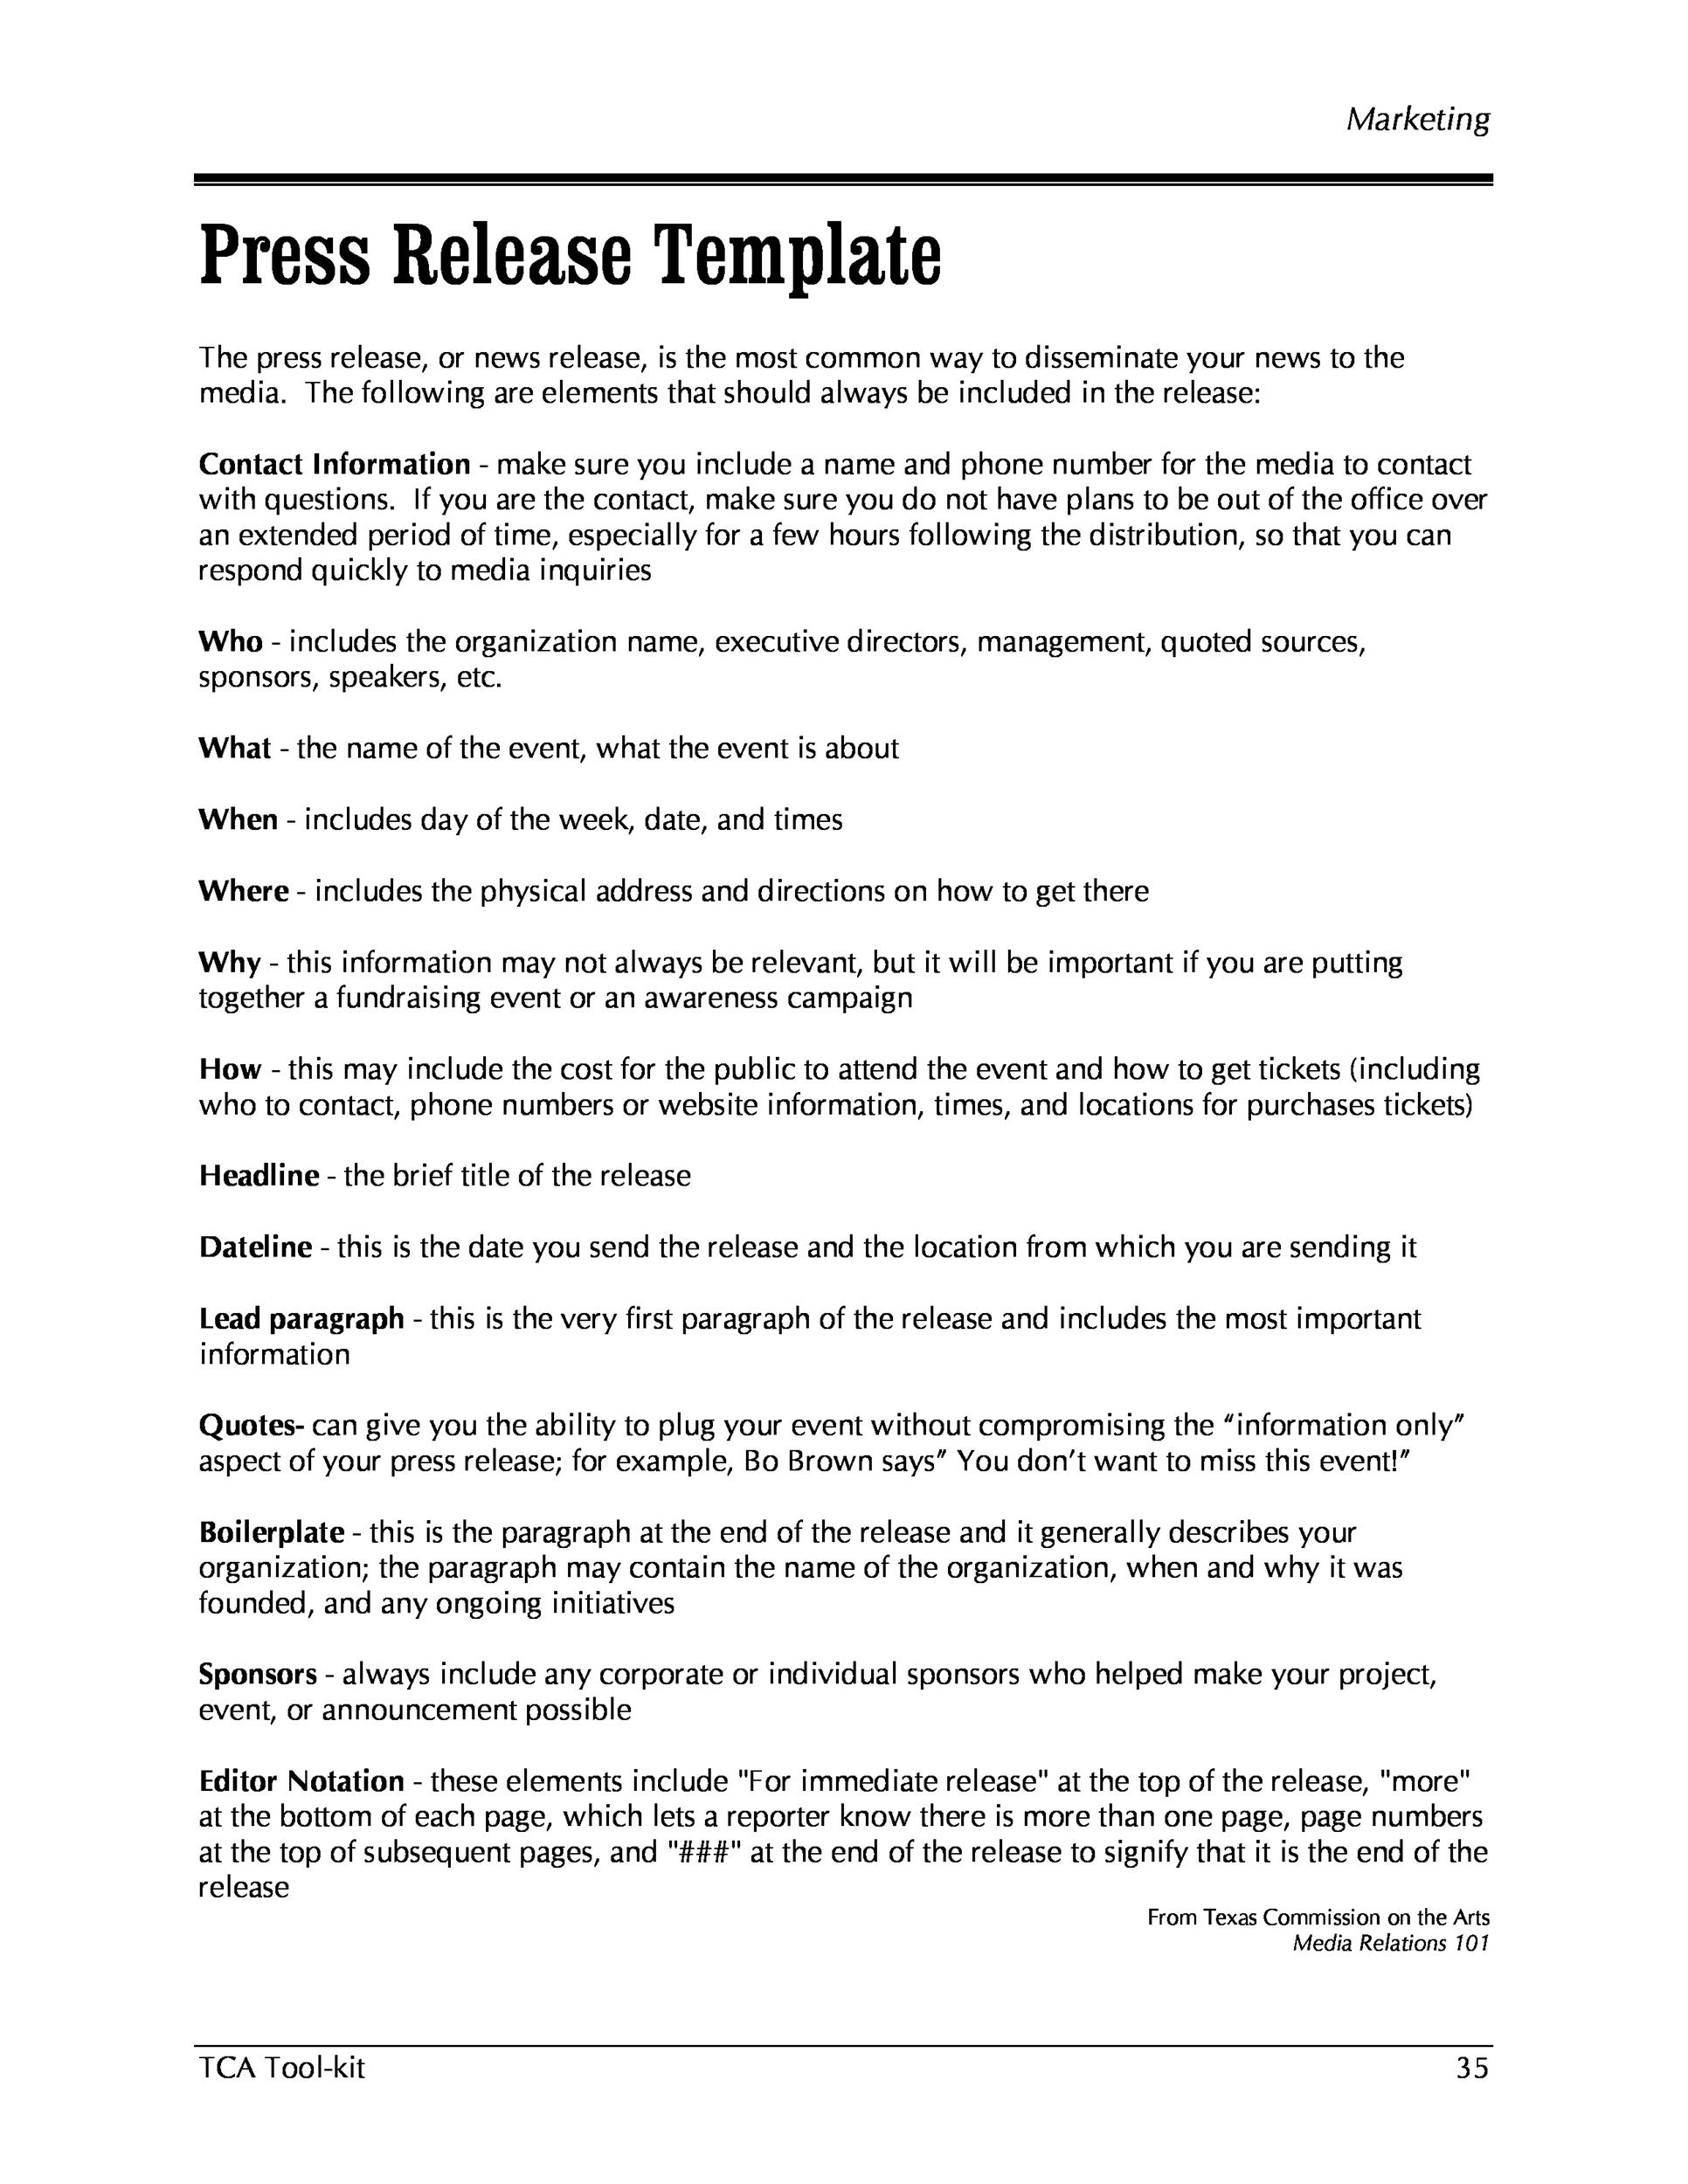 46 press release format templates examples samples template lab free press release template 42 maxwellsz